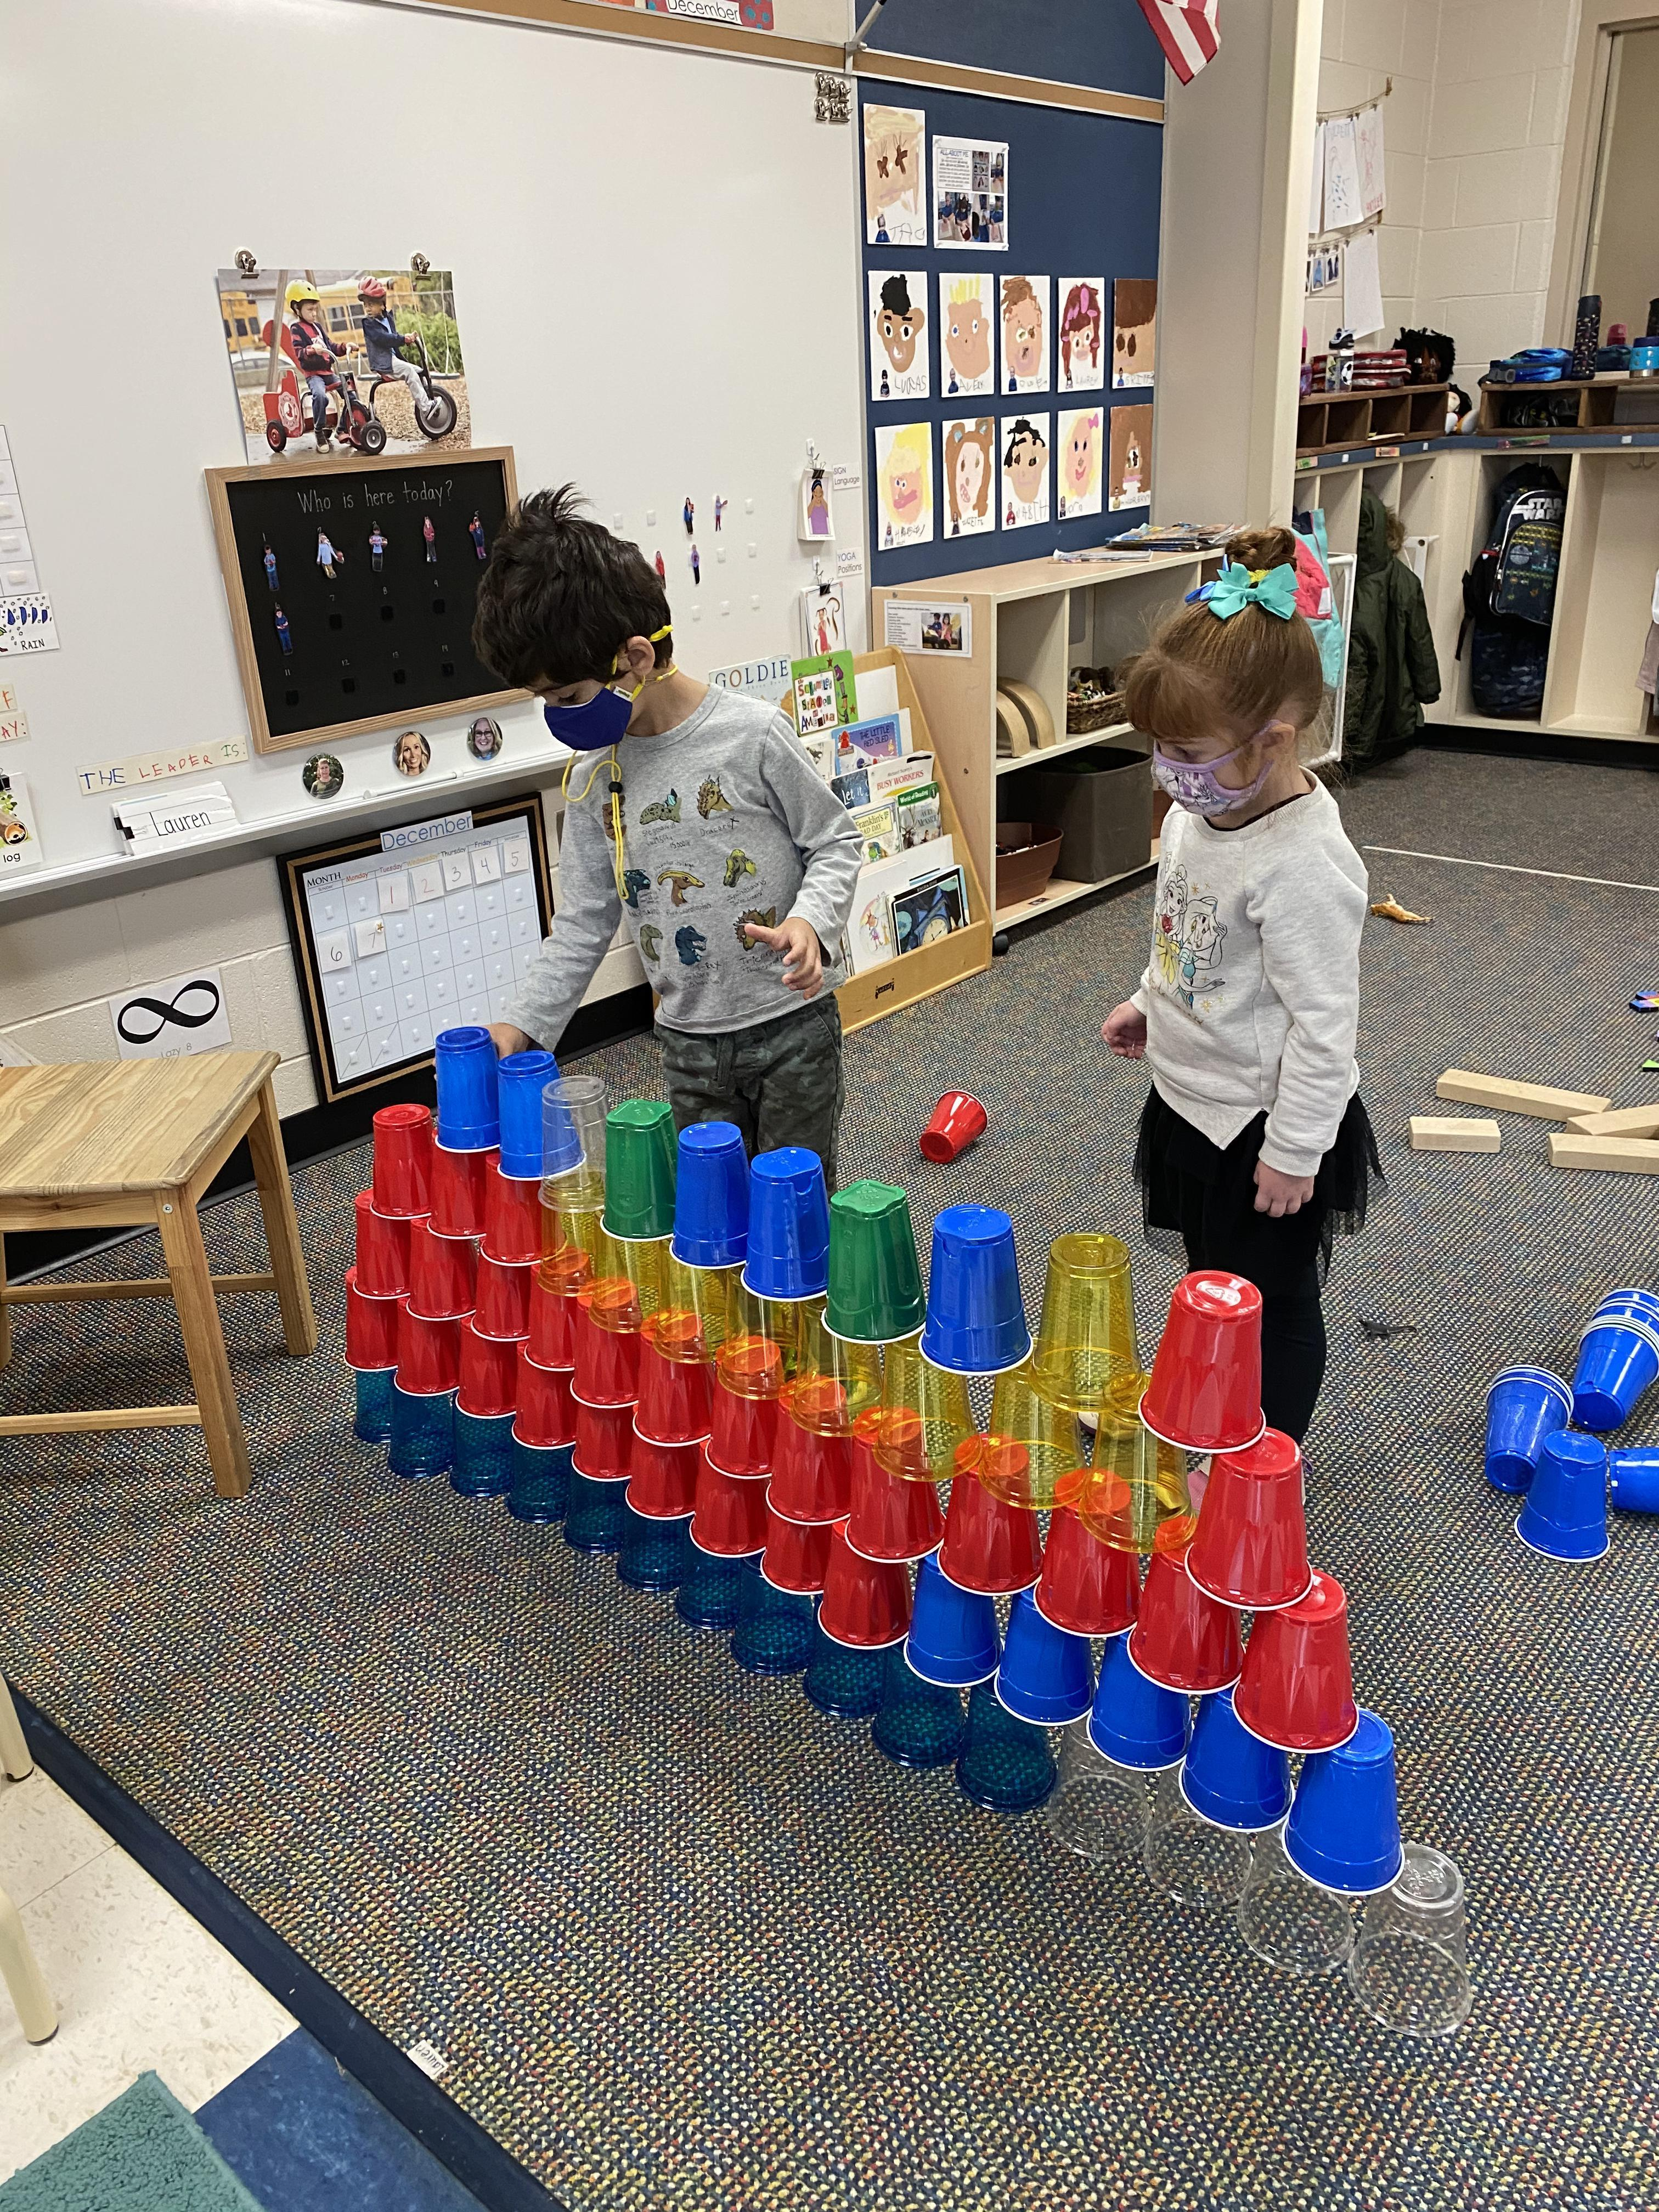 Cup tower